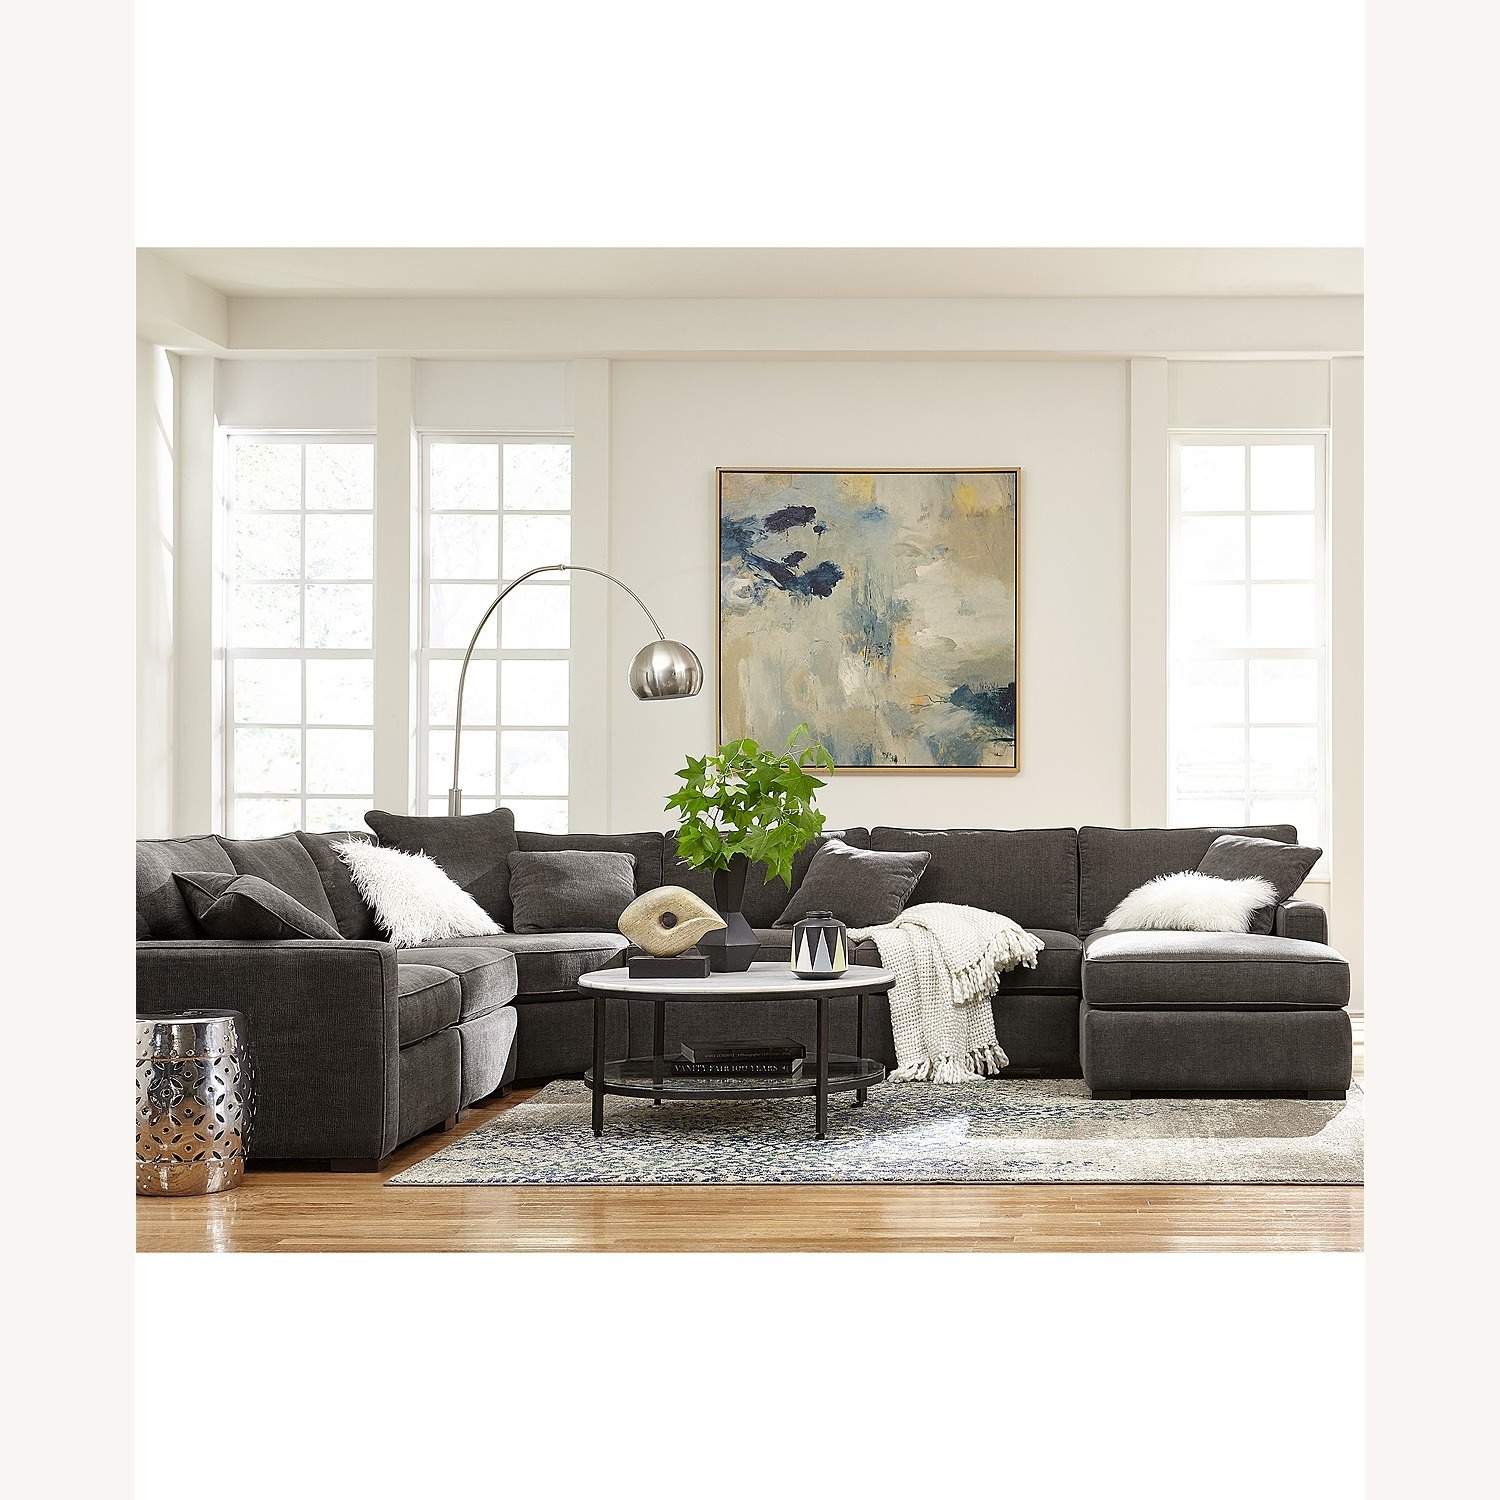 Macy's 3 Piece Sectional Sofa with Chase - image-3